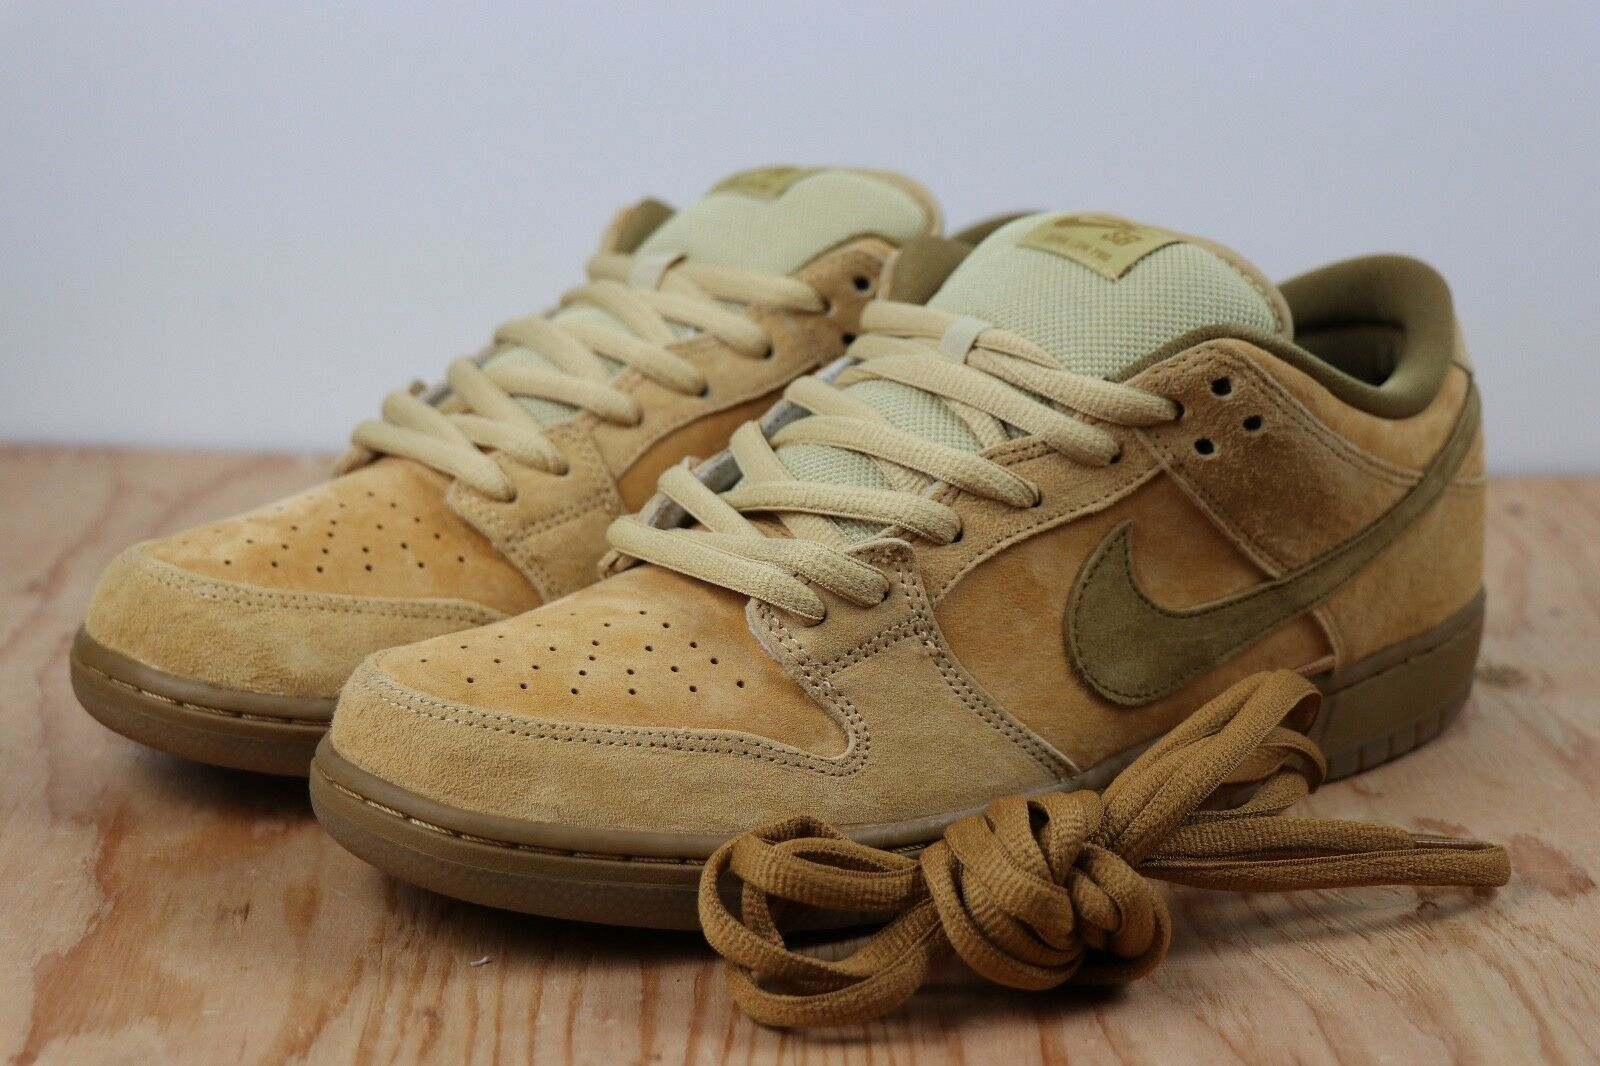 Nike SB Dunk faible TRD QS Forbes Dune New Wheat Mid Brown 883232-700 New Dune homme ff06c1